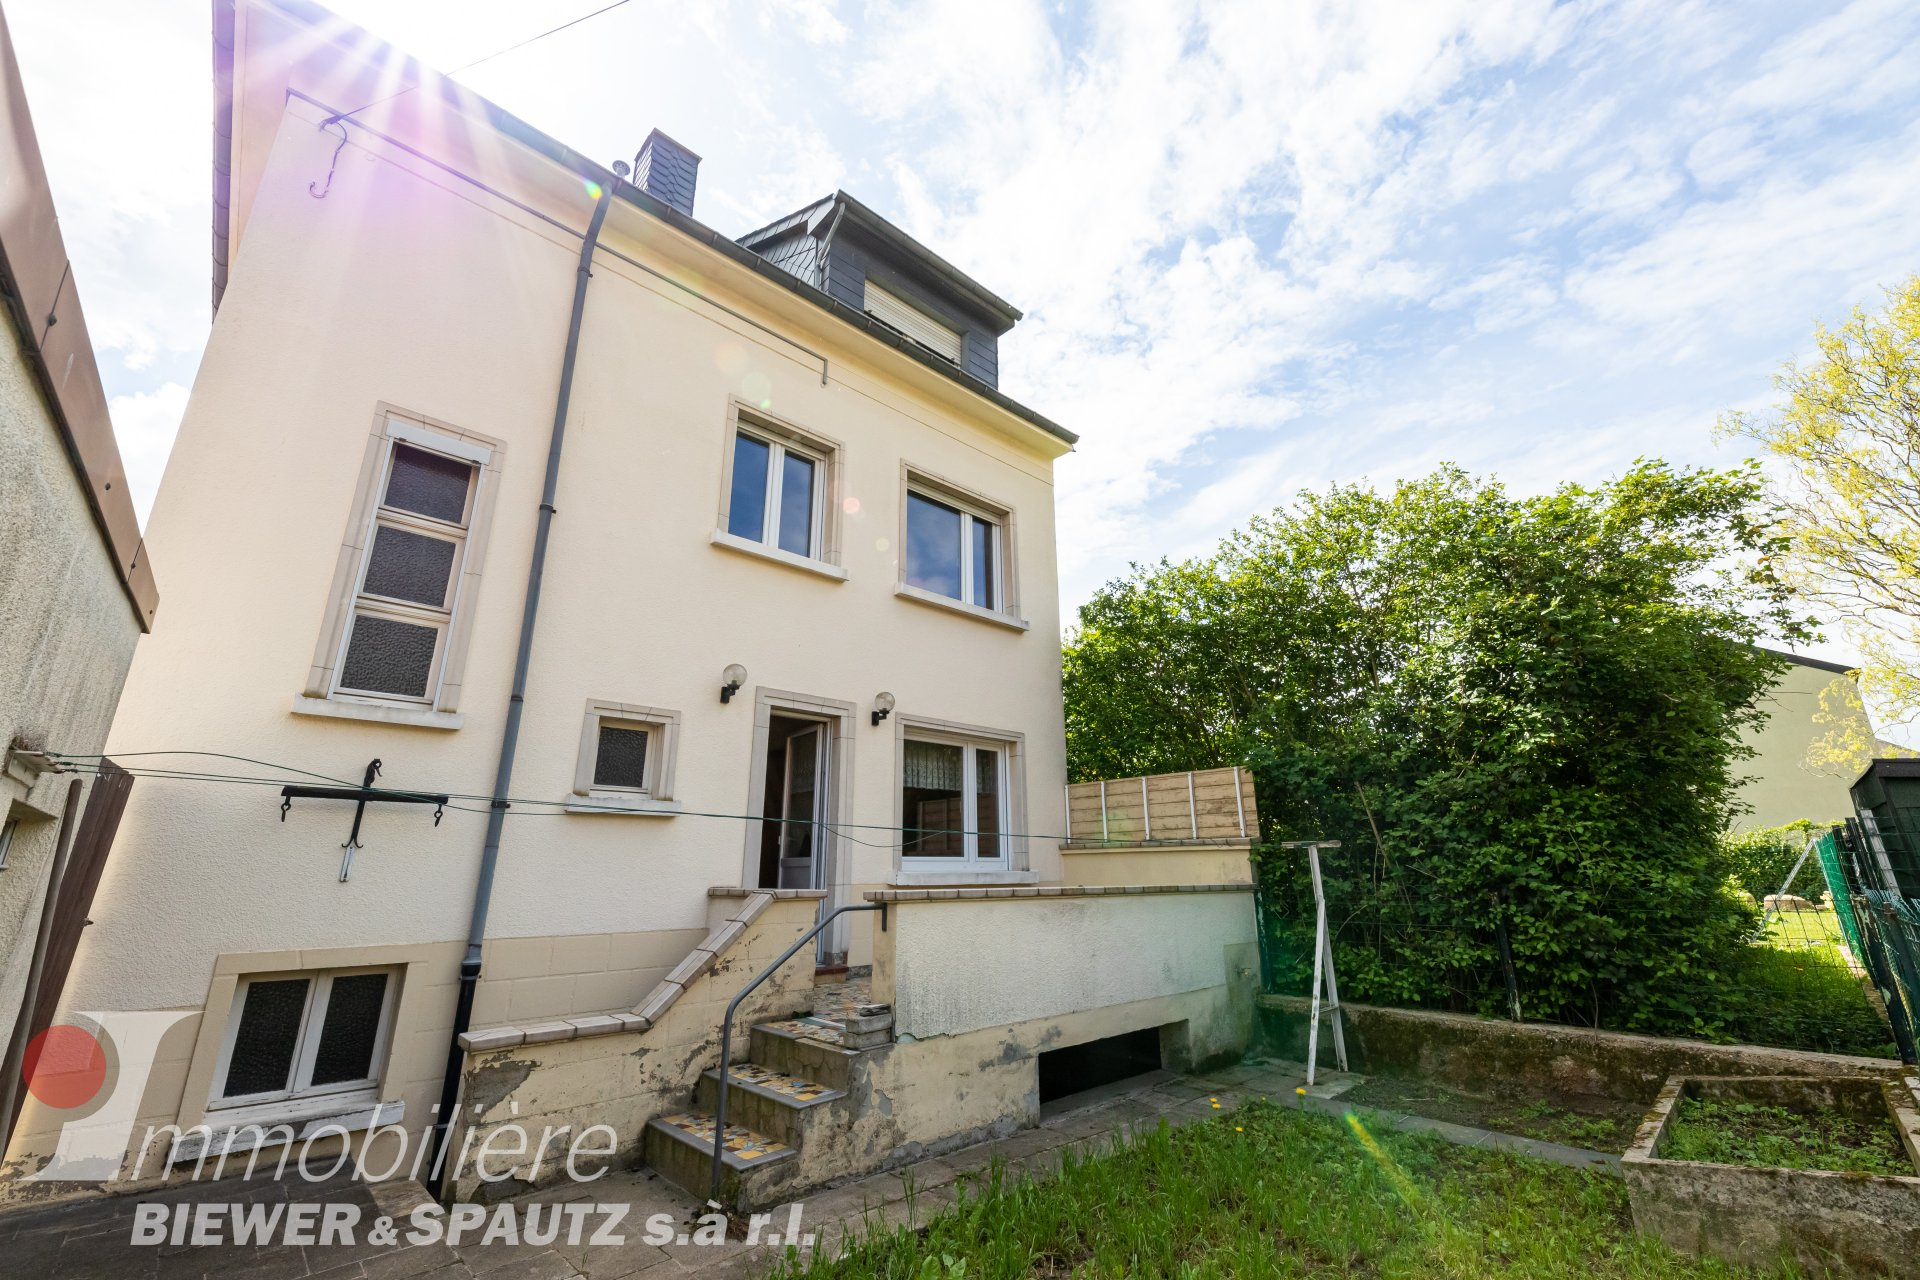 SOLD - house with 5 bedrooms in Wasserbillig